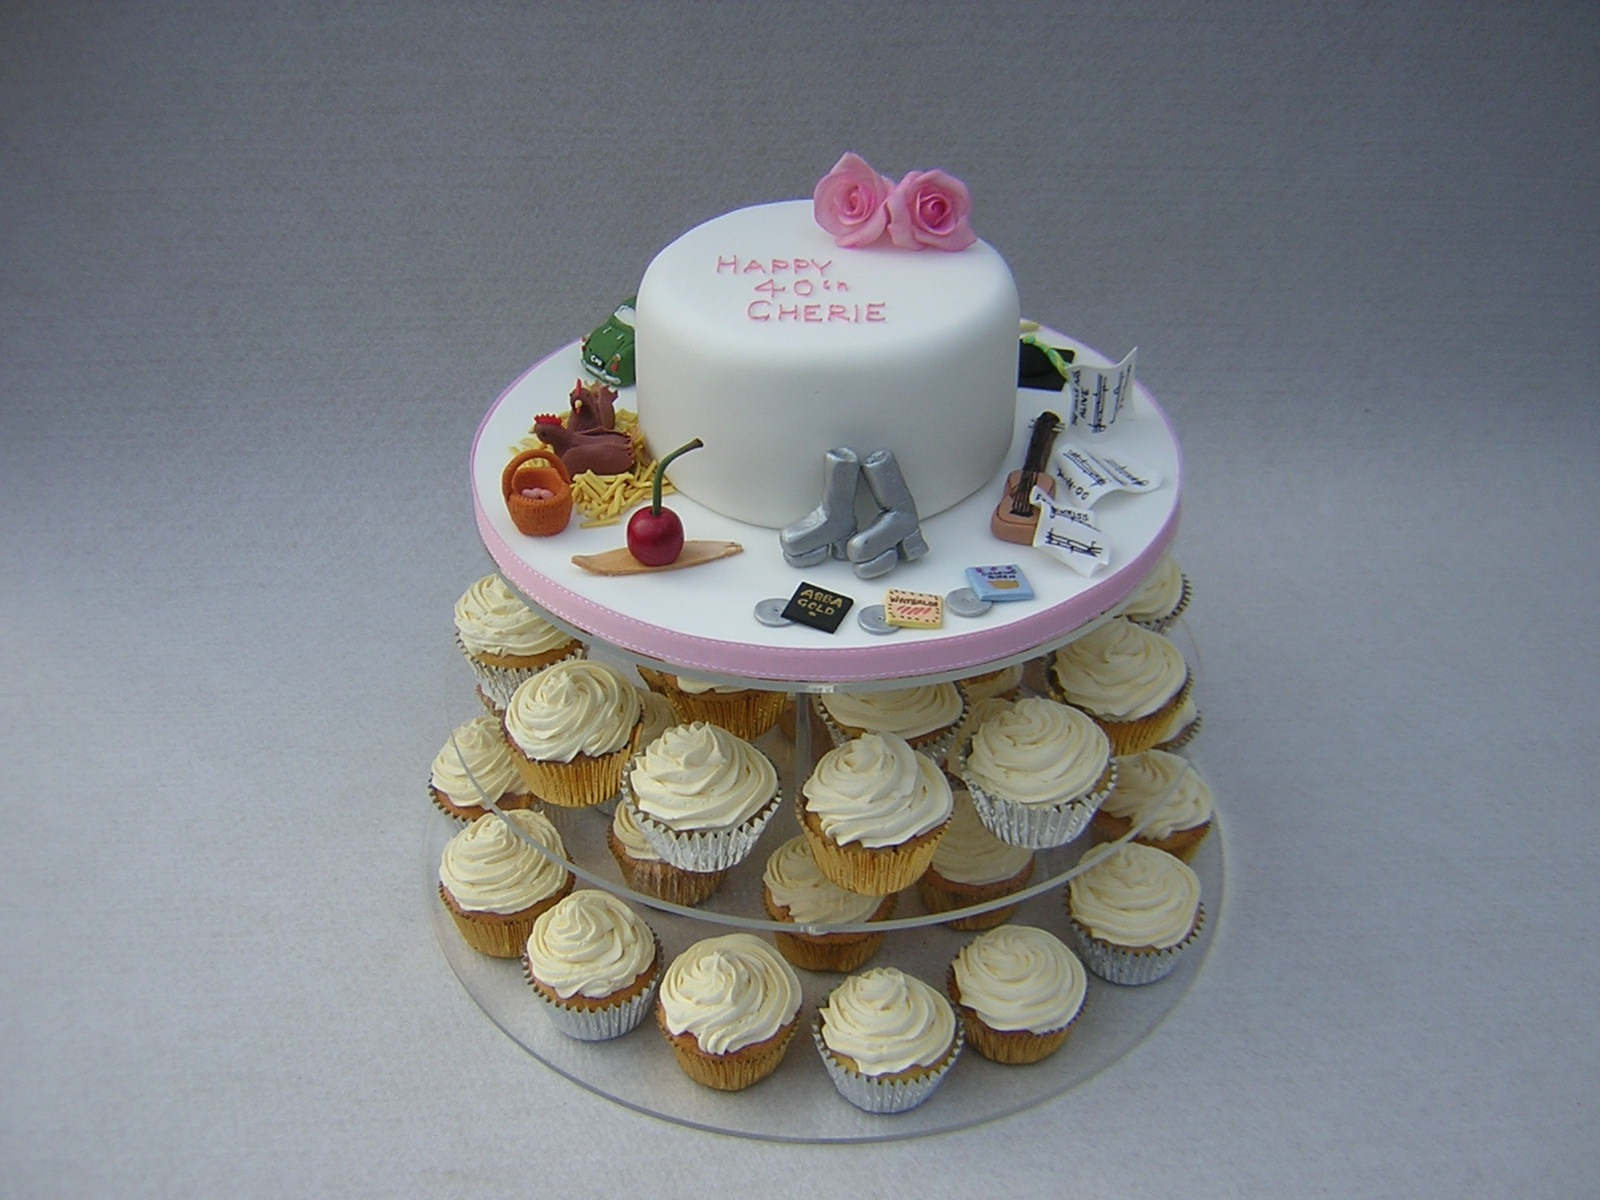 this-is-your-cake-5-cherie-cupcake-tower